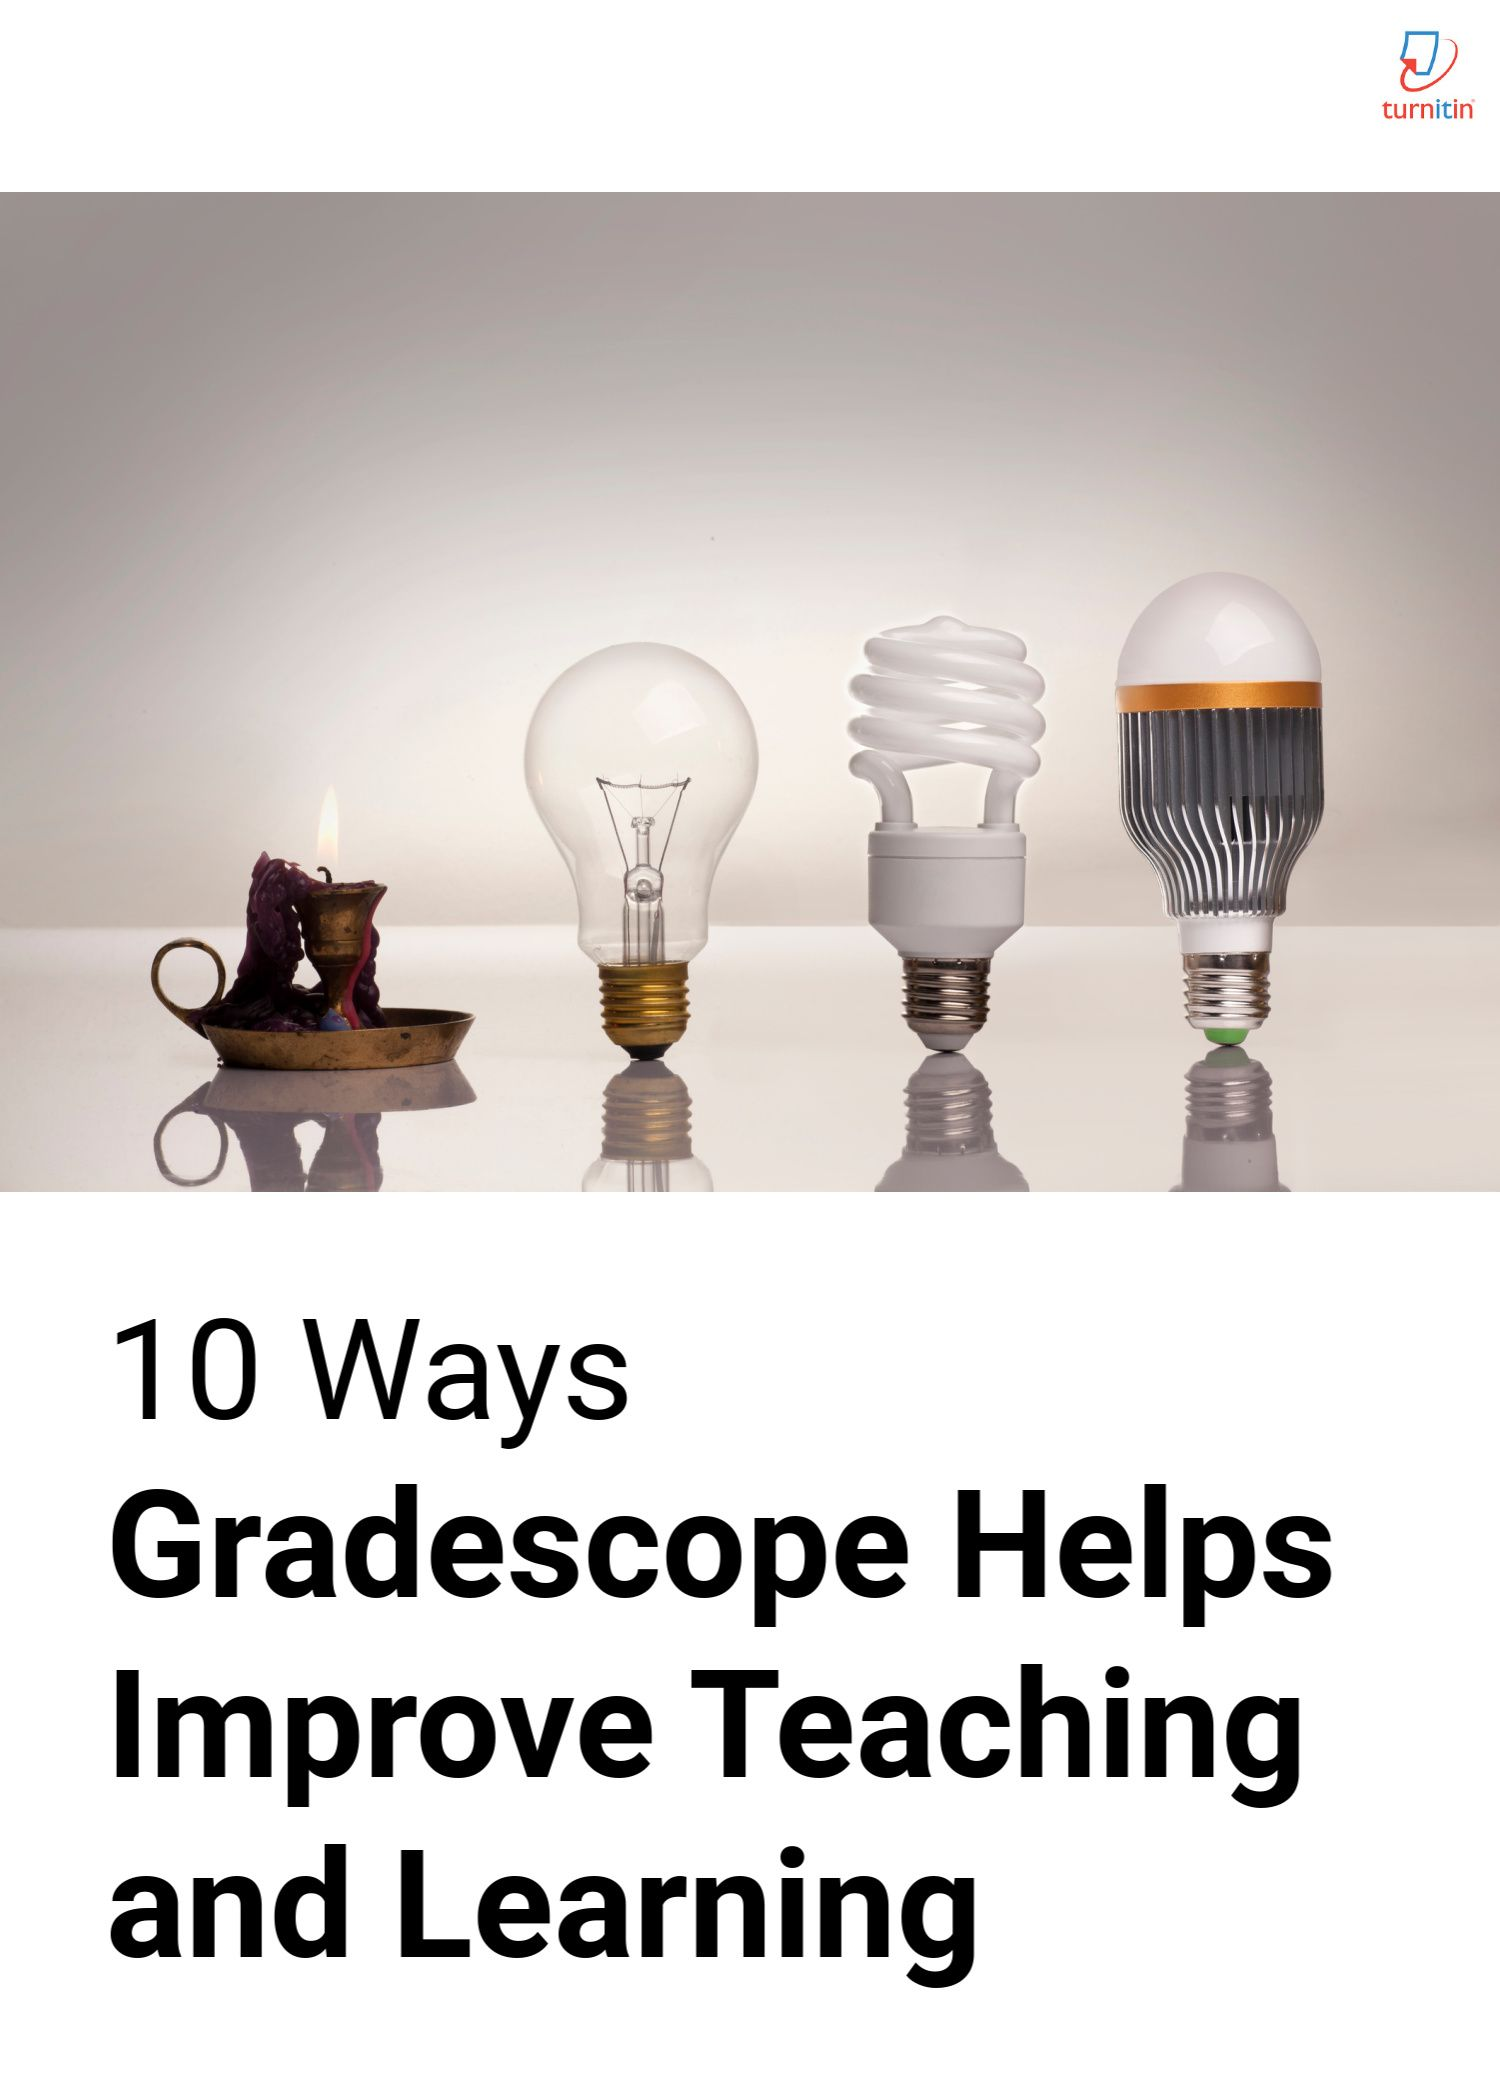 10 Way Gradescope Help Improve Teaching And Learning Teacher Memes Will Turnitin Detect Paraphrasing